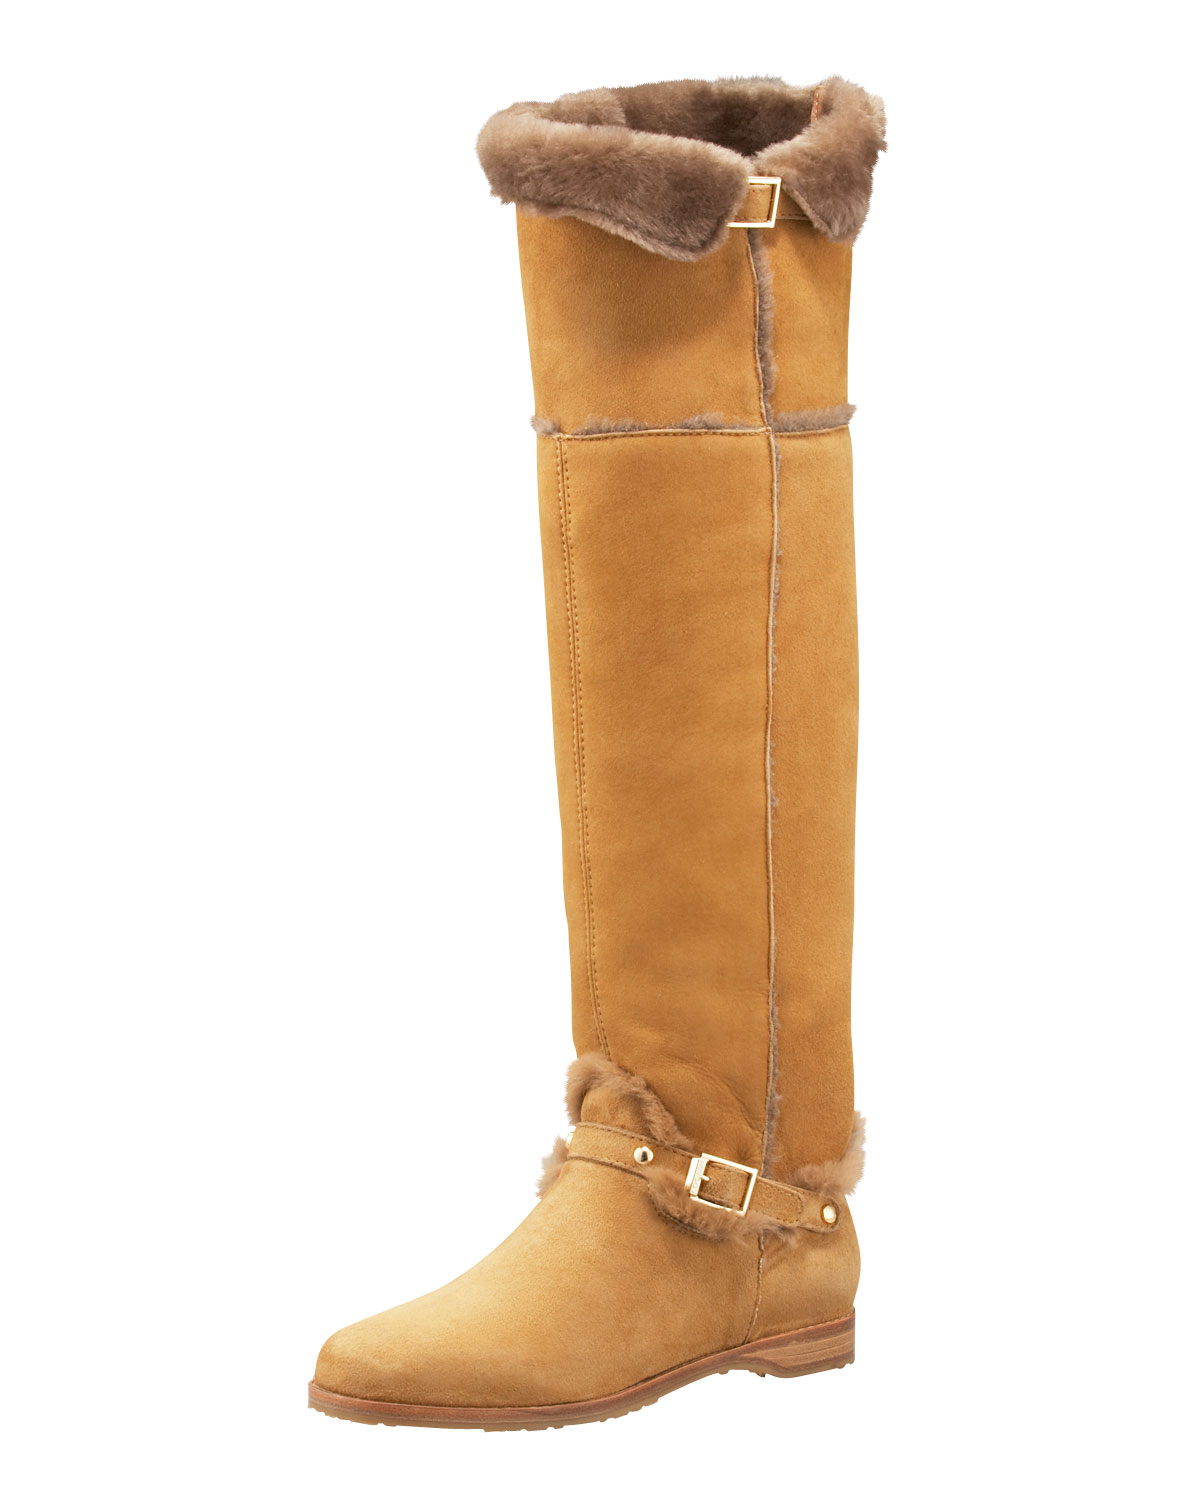 6846a25ec69 Lyst - Jimmy Choo Napa Shearling Over-the-knee Boot in Brown